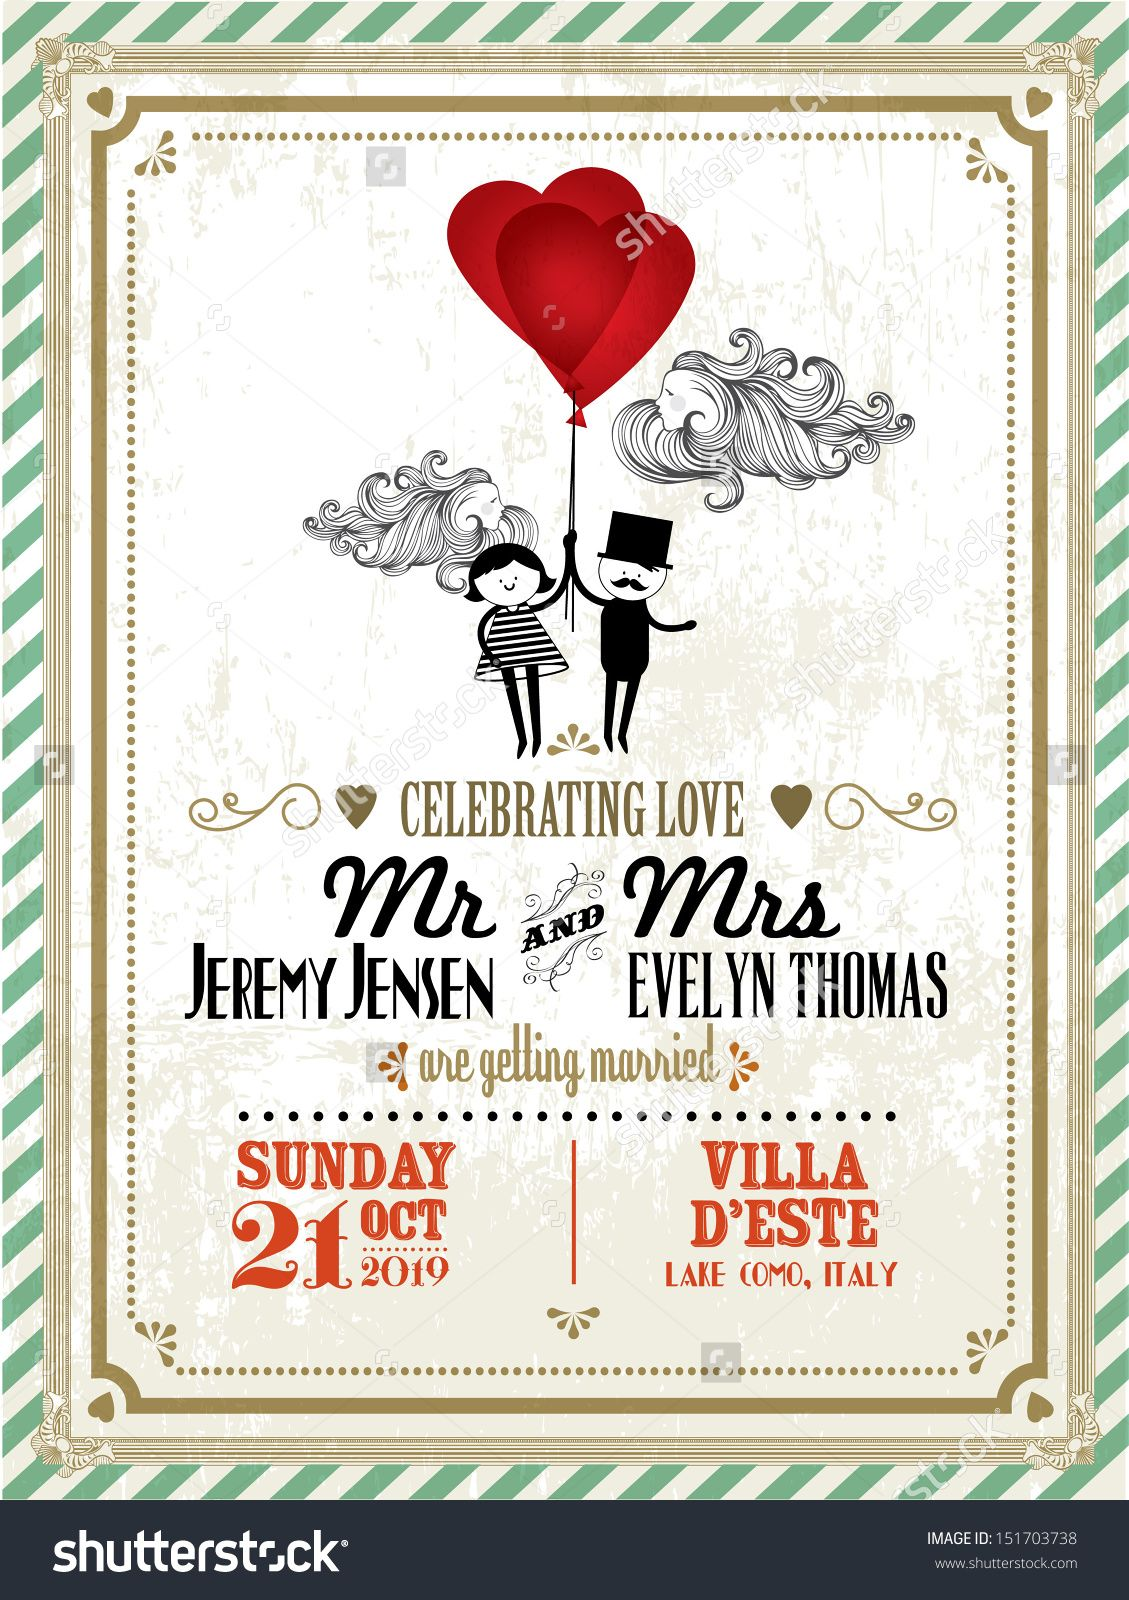 Vintage wedding invitation card template with boy and girl holding vintage wedding invitation card template with boy and girl holding balloons vectorillustration junglespirit Image collections